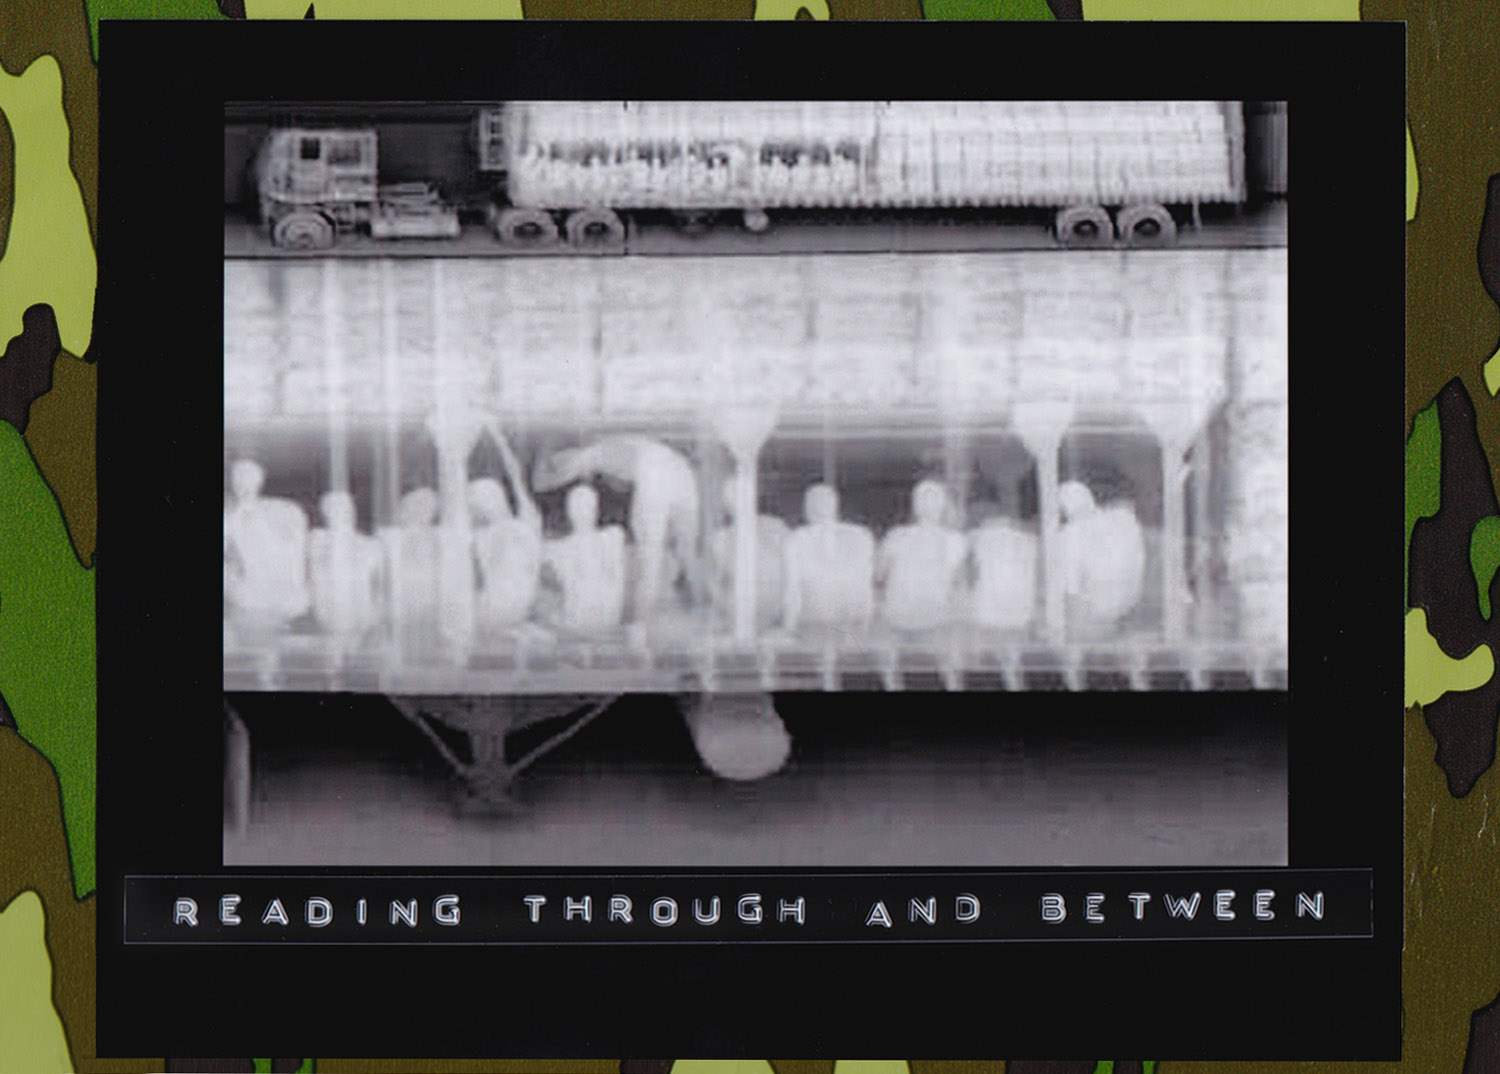 """Seen in this March 1 1999 X-ray photograph taken by Mexican authorities, are a wide shot, on top, and a close up version of human forms and cargo in a truck on Mexico's southern border with Guatemala. The image was made using a mobile truck scanning system, or """"Mobile Search"""" equipment.(Photo: Reforma Archivo)"""